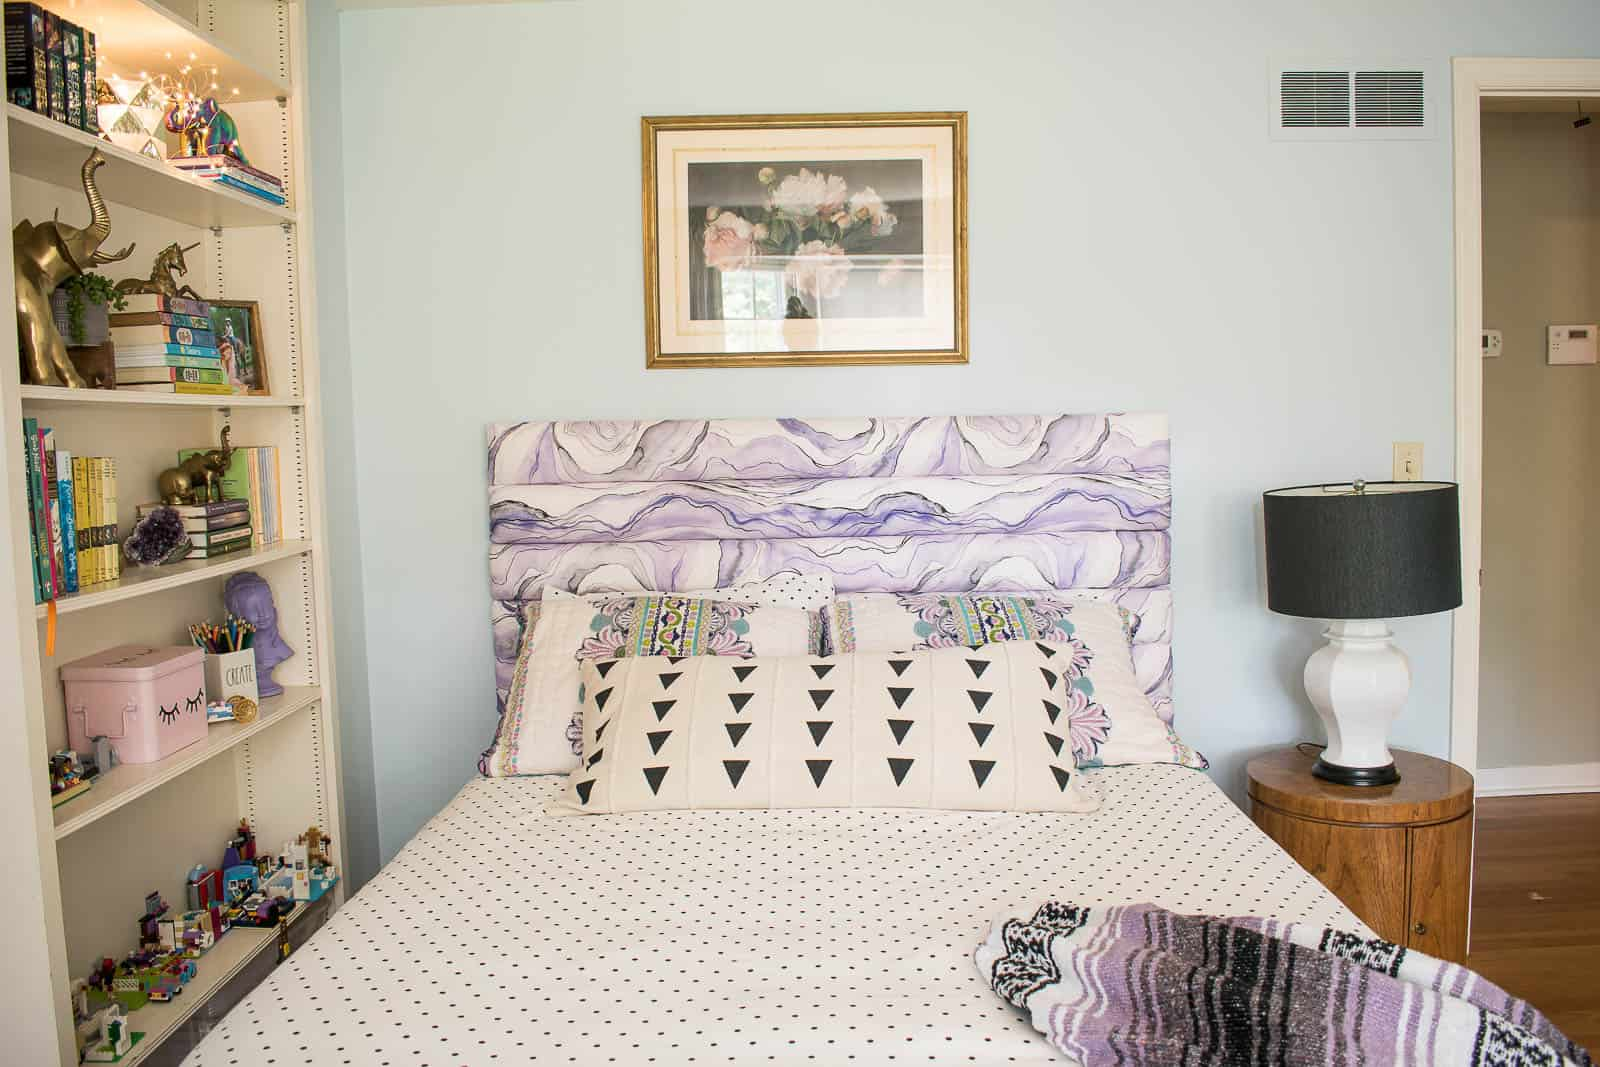 upholstered purple headboard